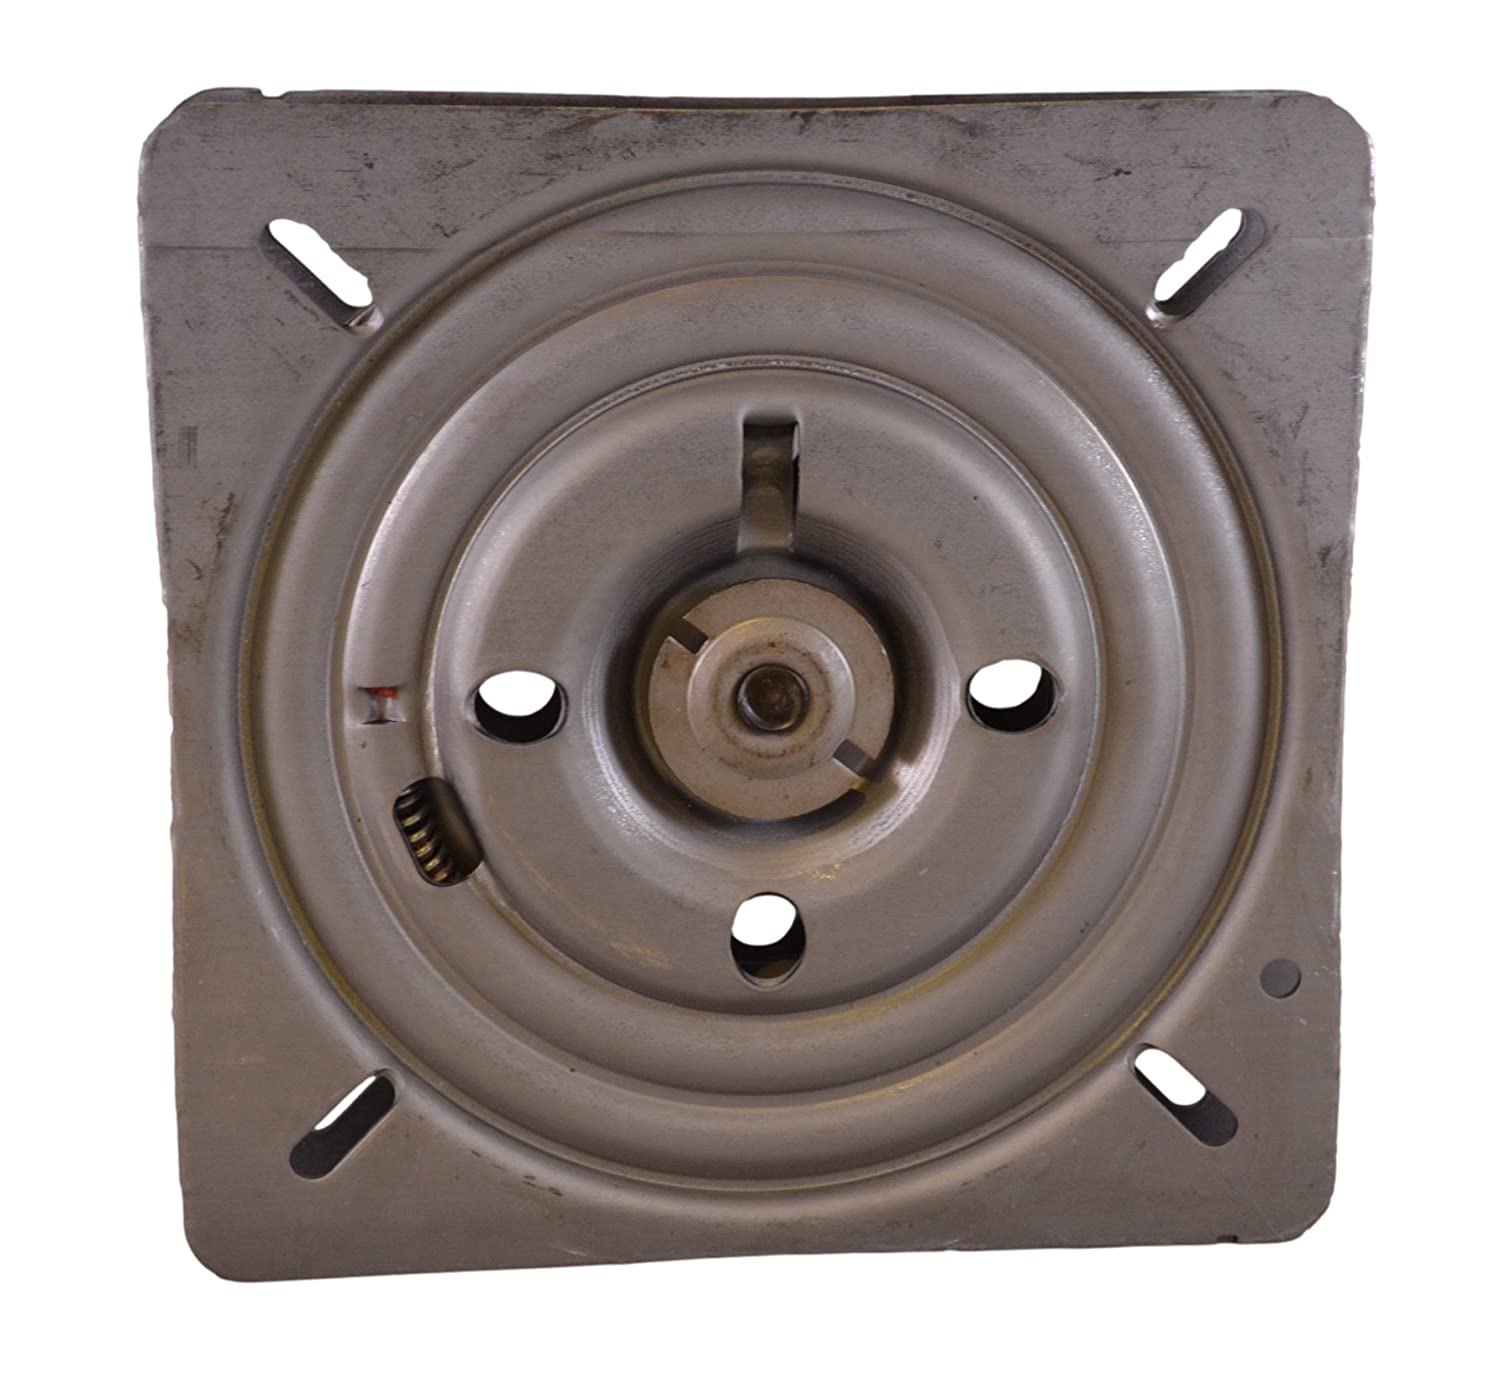 Recliner-Handles Replacement Memory Swivel Plate for Bar Stool Chair 7 inch Memory Swivel